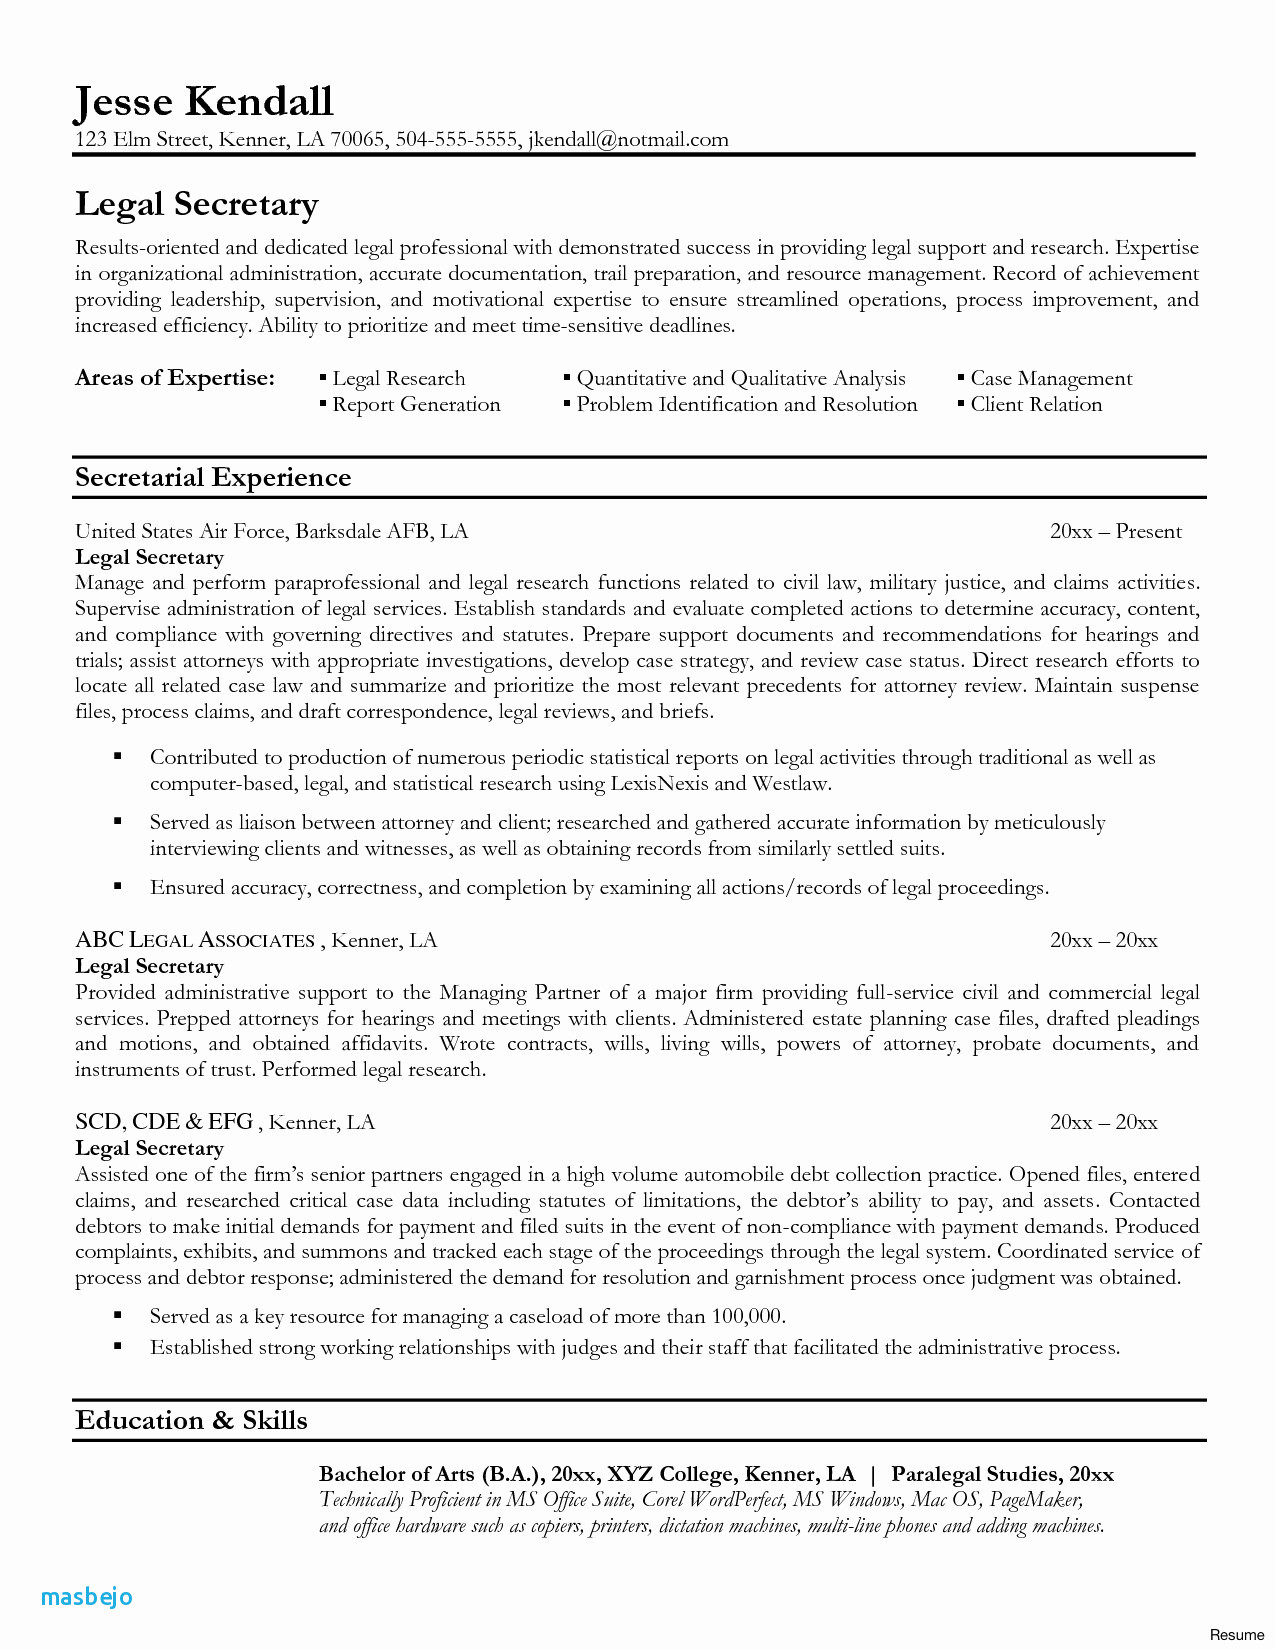 lawyer resume template example-Legal Resume Examples Law Student Resume Template Best Resume Examples 0d 16-k